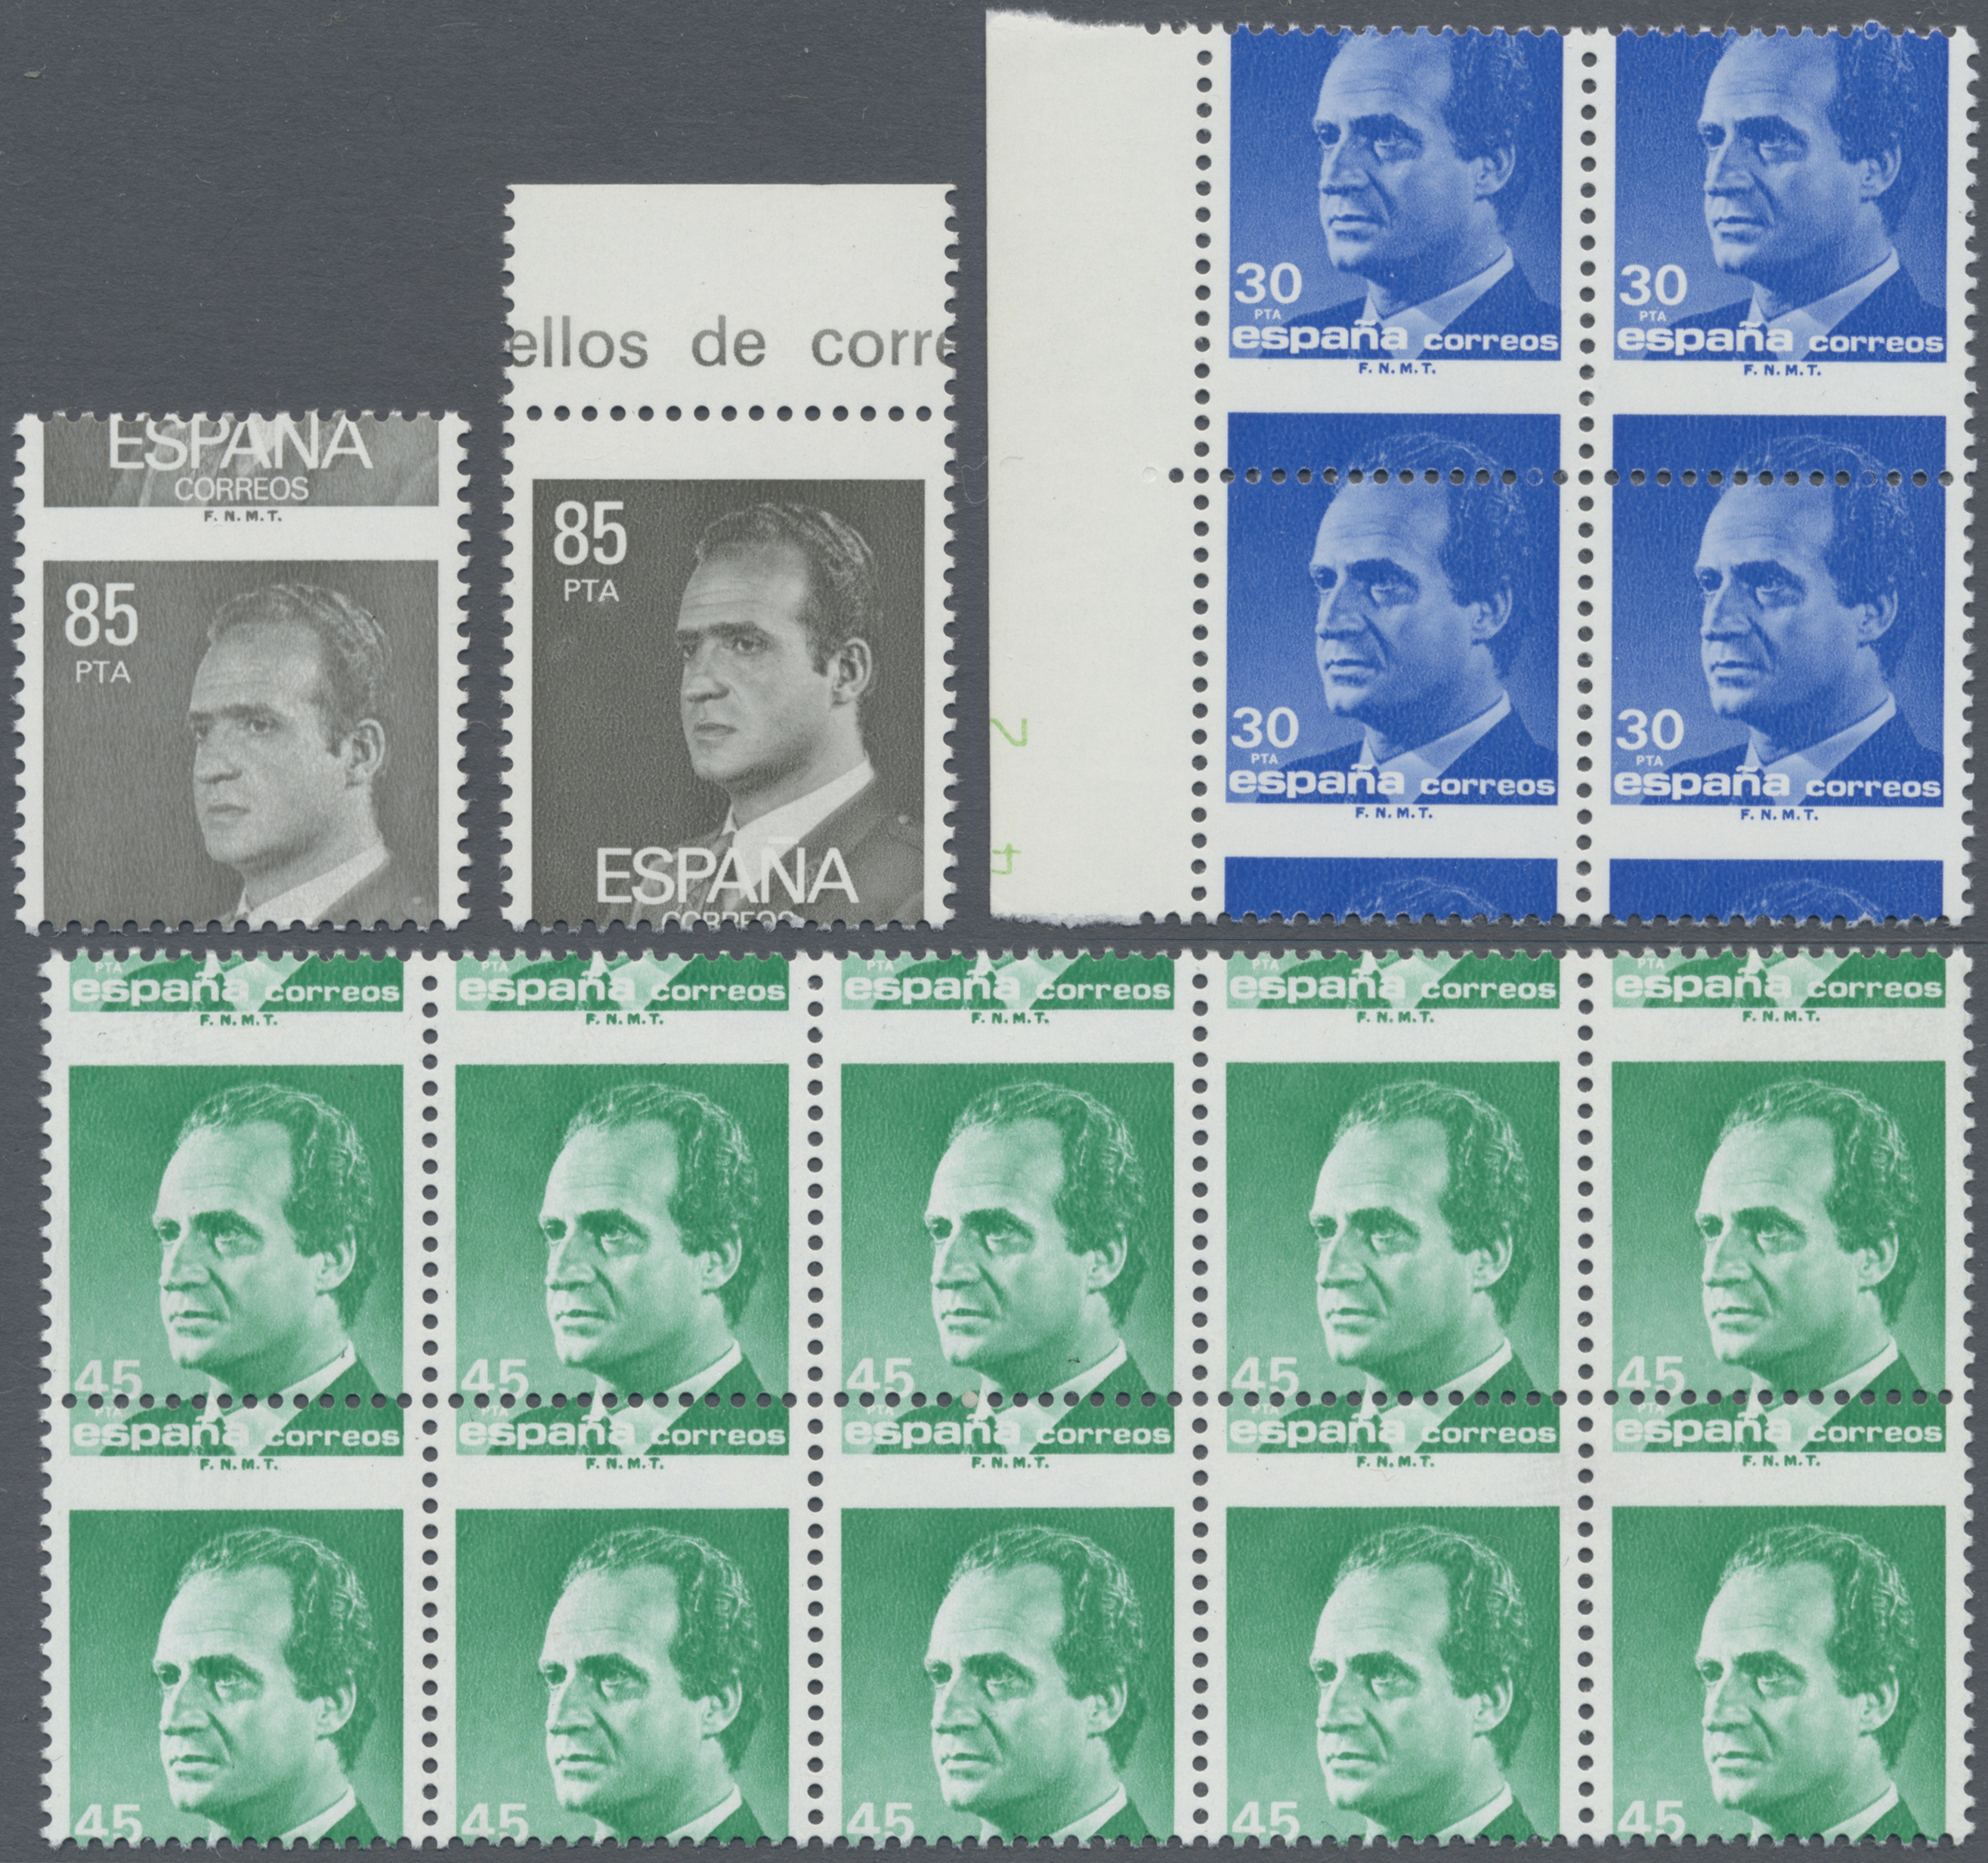 Lot 19264 - spanien  -  Auktionshaus Christoph Gärtner GmbH & Co. KG Sale #48 collections Overseas  Airmail / Ship mail & Thematics